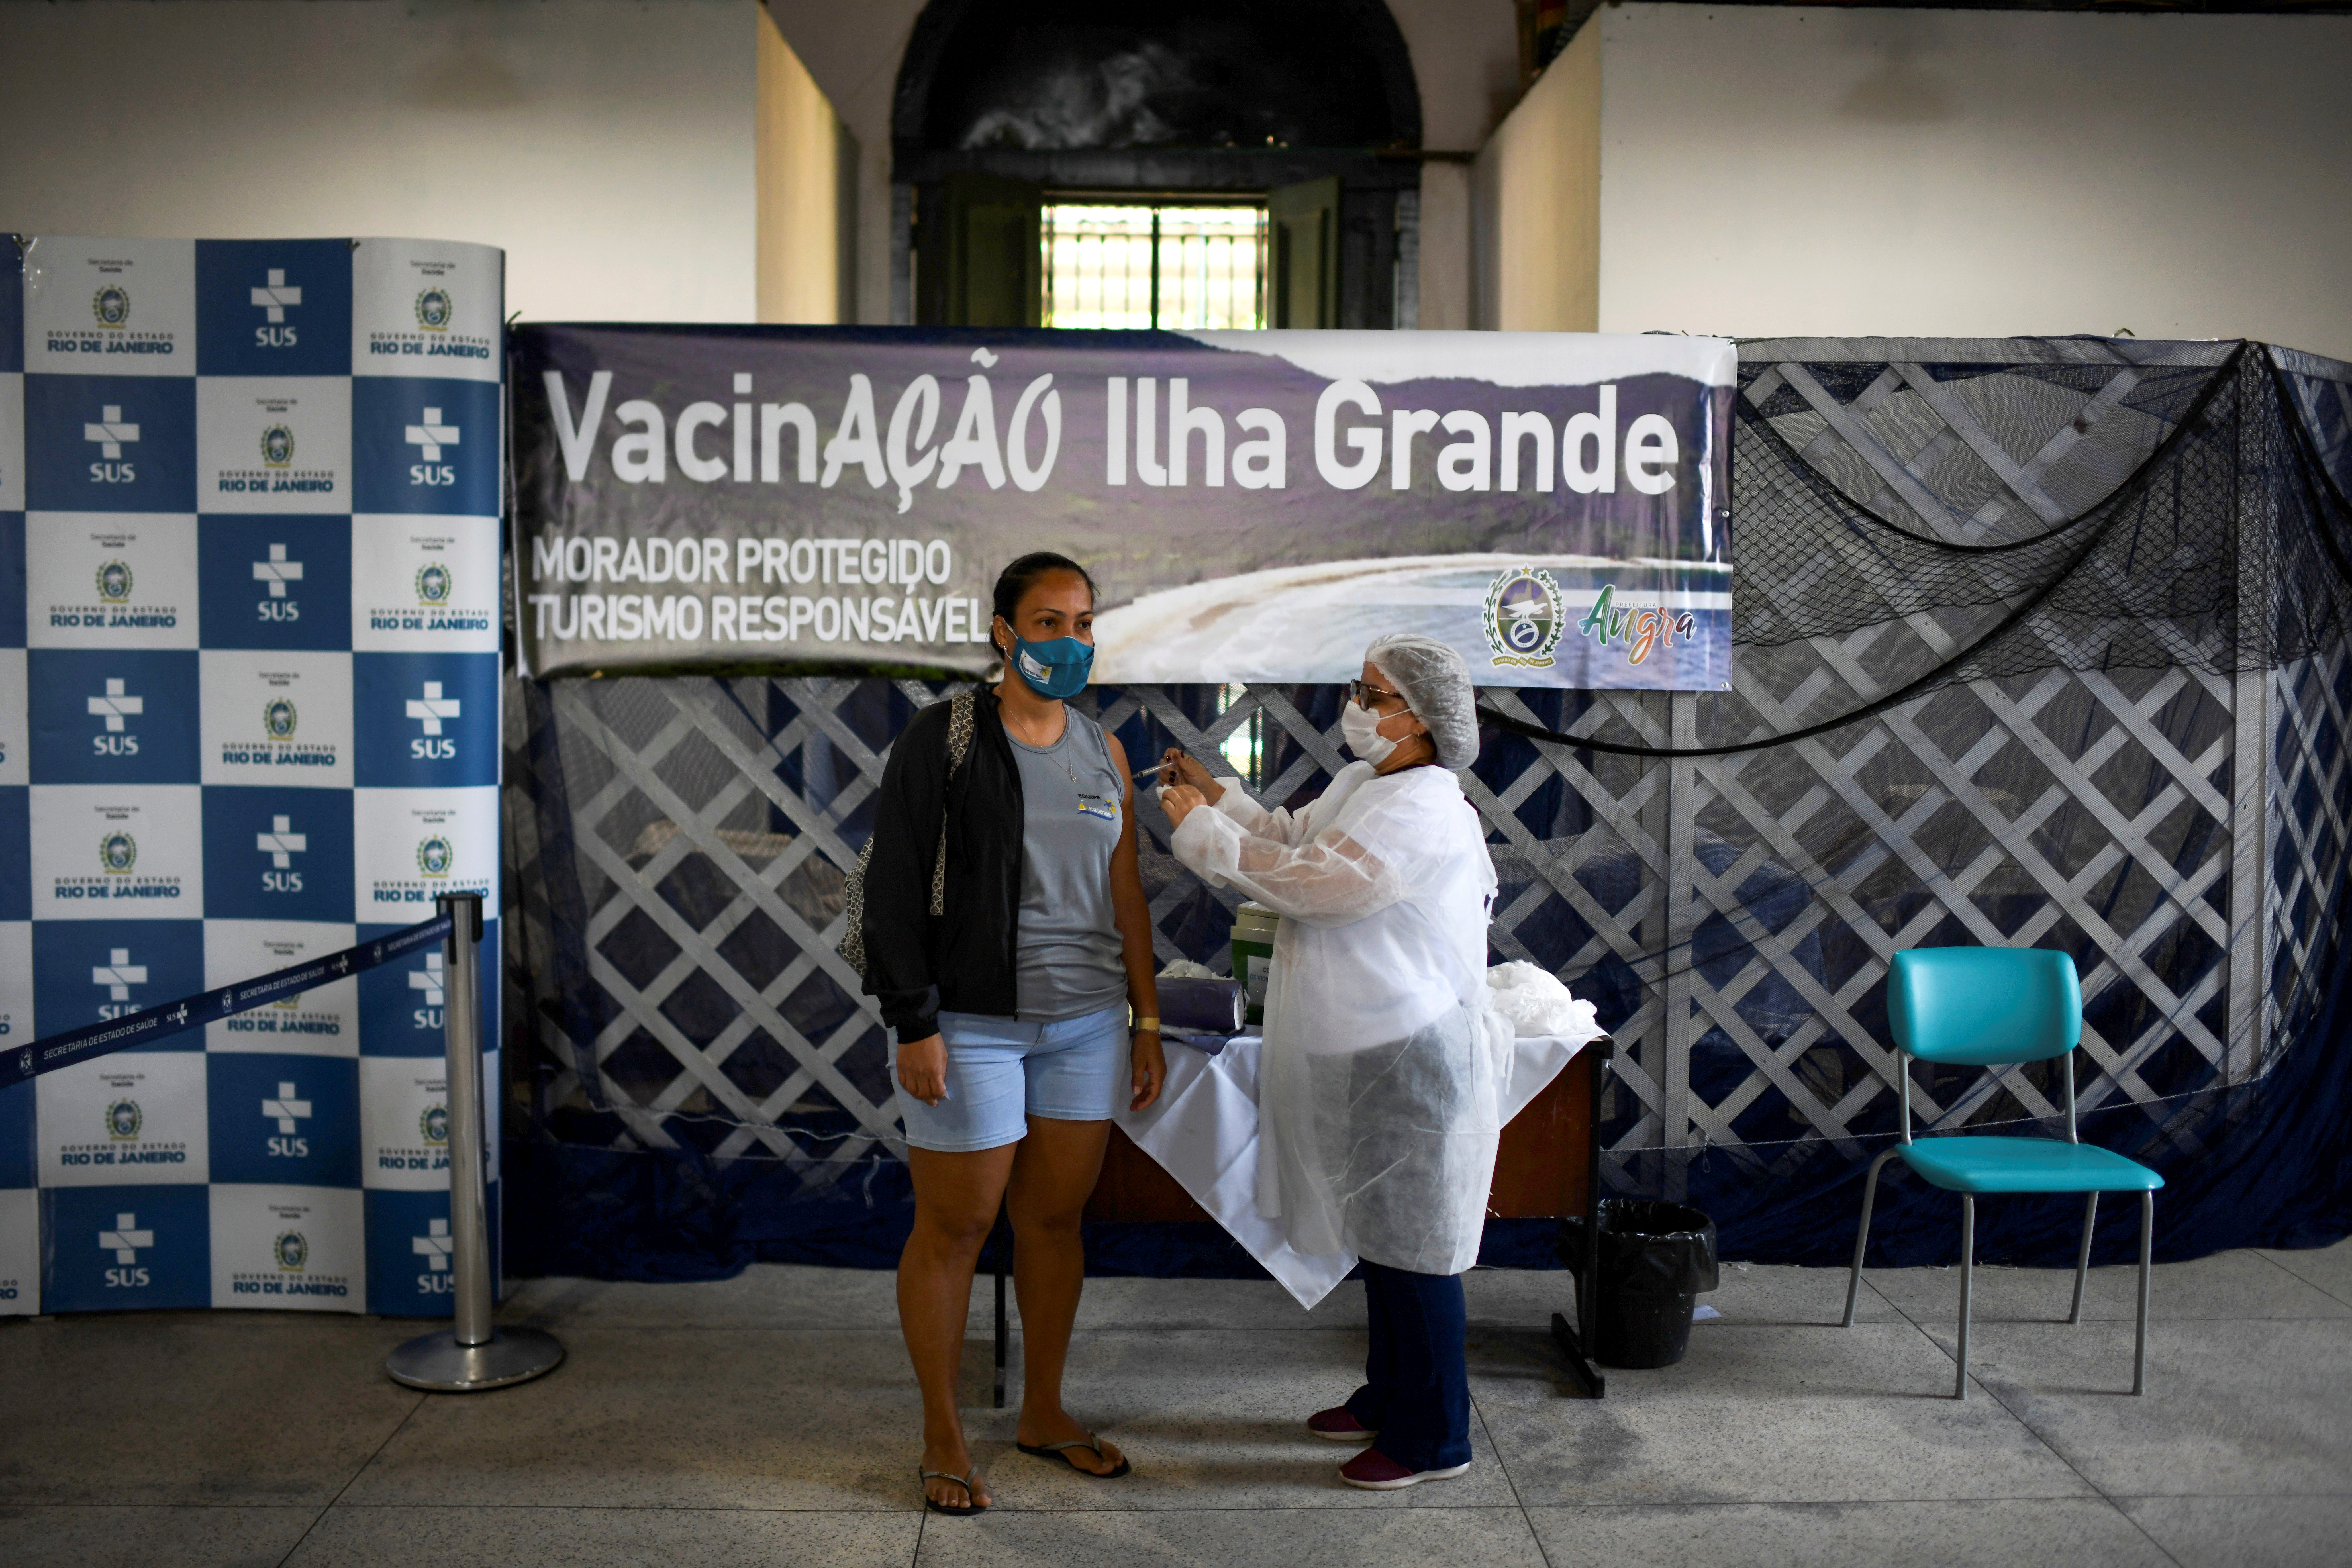 A health worker administers a dose of Johnson & Johnson vaccine against the coronavirus disease (COVID-19) to a resident, during mass vaccination at the Ilha Grande island, one of the most famous tourist spots in Rio de Janeiro state, Brazil, July 10, 2021. REUTERS/Lucas Landau